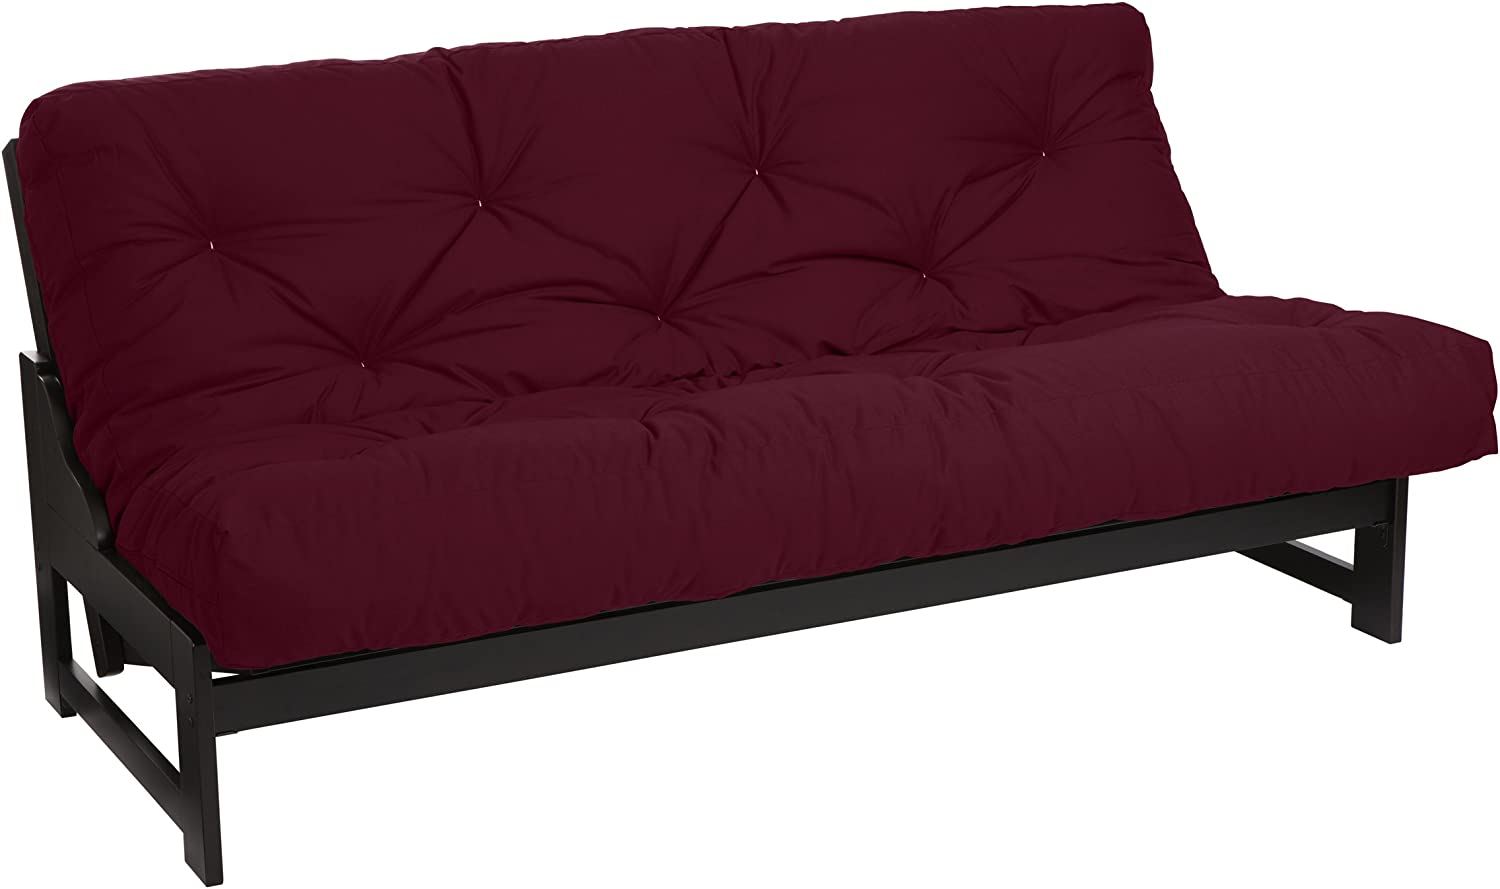 Mozaic Futon Mattress, Queen, Burgundy